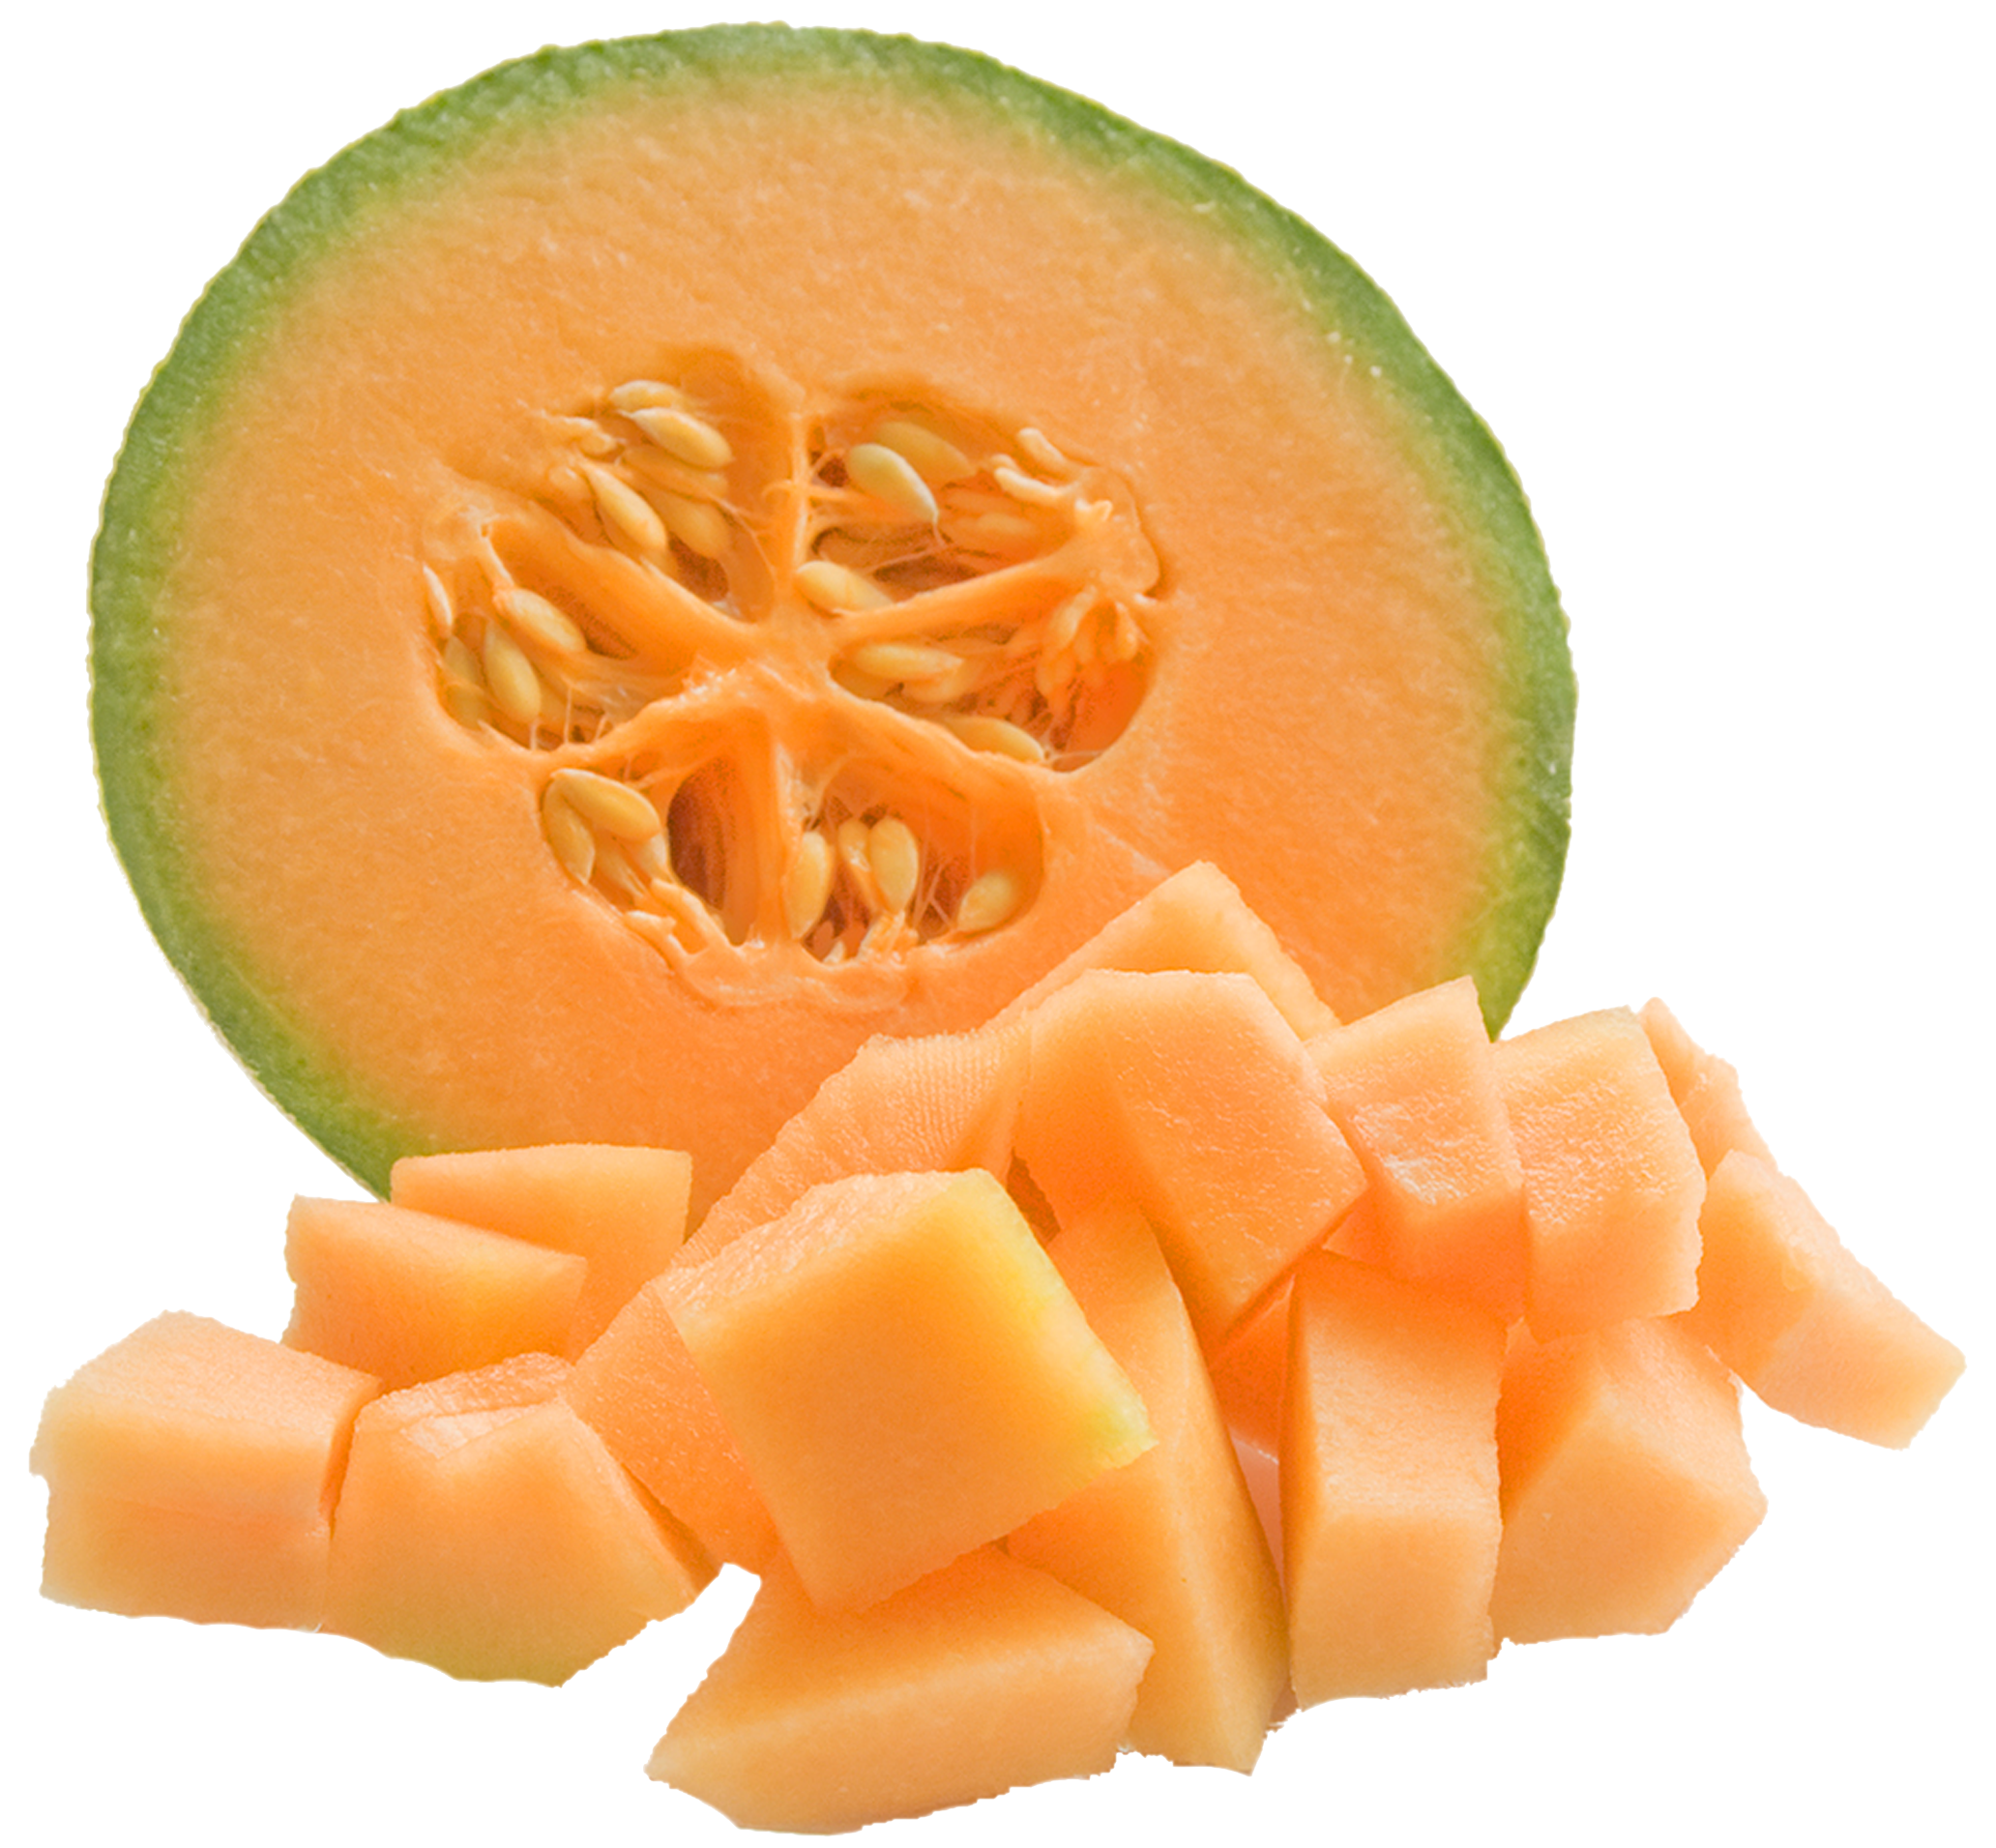 Melon clipart #2, Download drawings